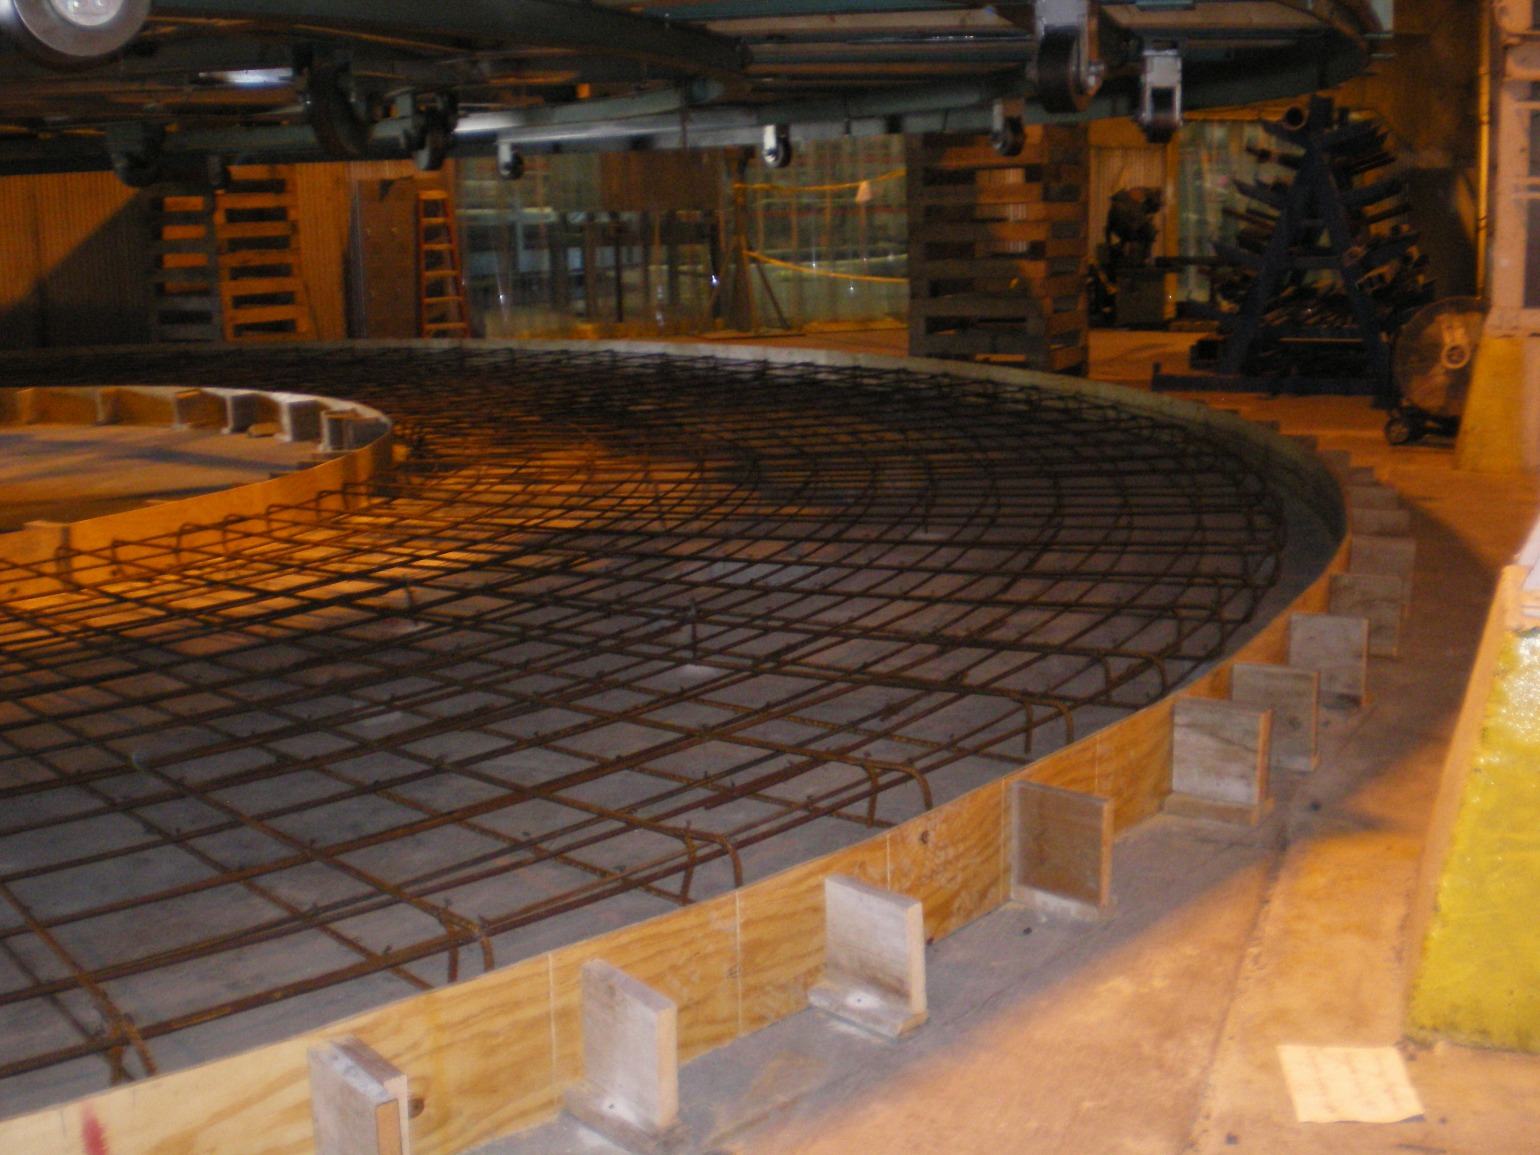 DeepFlex – Carousel Equipment Base, Manitowoc WI | Other Projects Portfolio | A.C.E. Building Service, Manitowoc Wisconsin